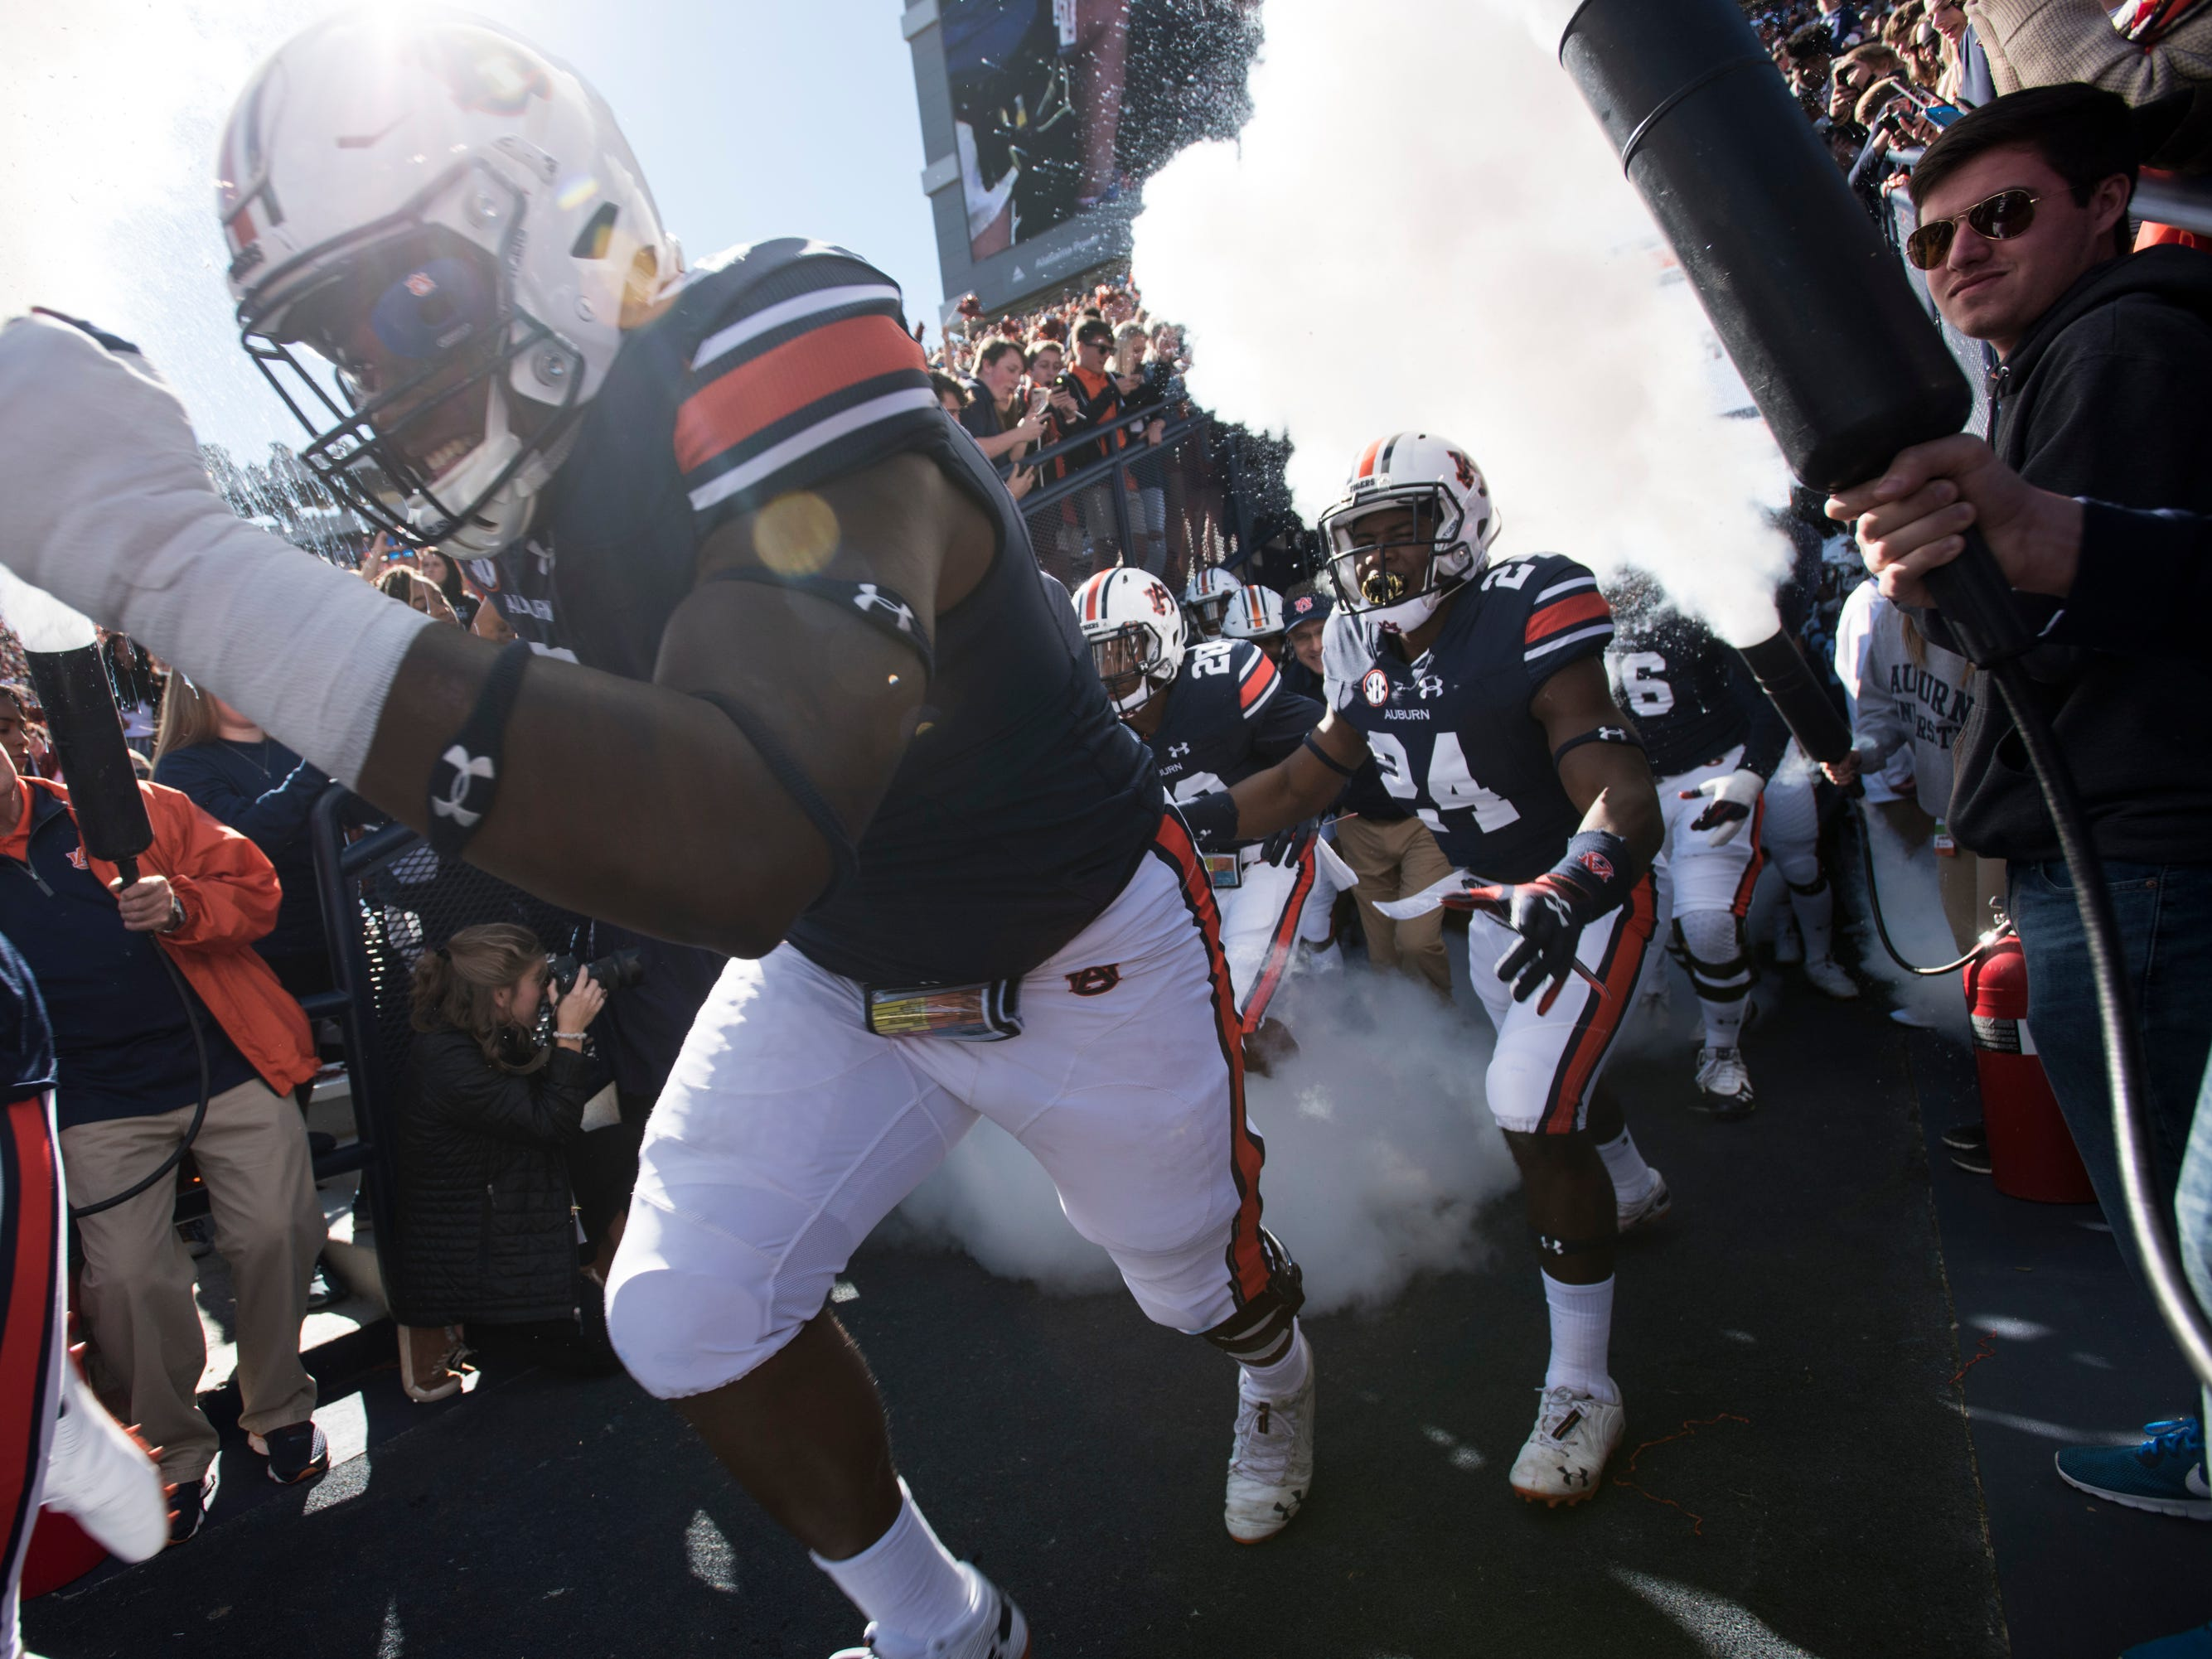 Auburn players take the field before their matchup with Texas A&M at Jordan-Hare Stadium on Saturday, Nov. 3, 2018. Auburn defeated Texas A&M 28-24.